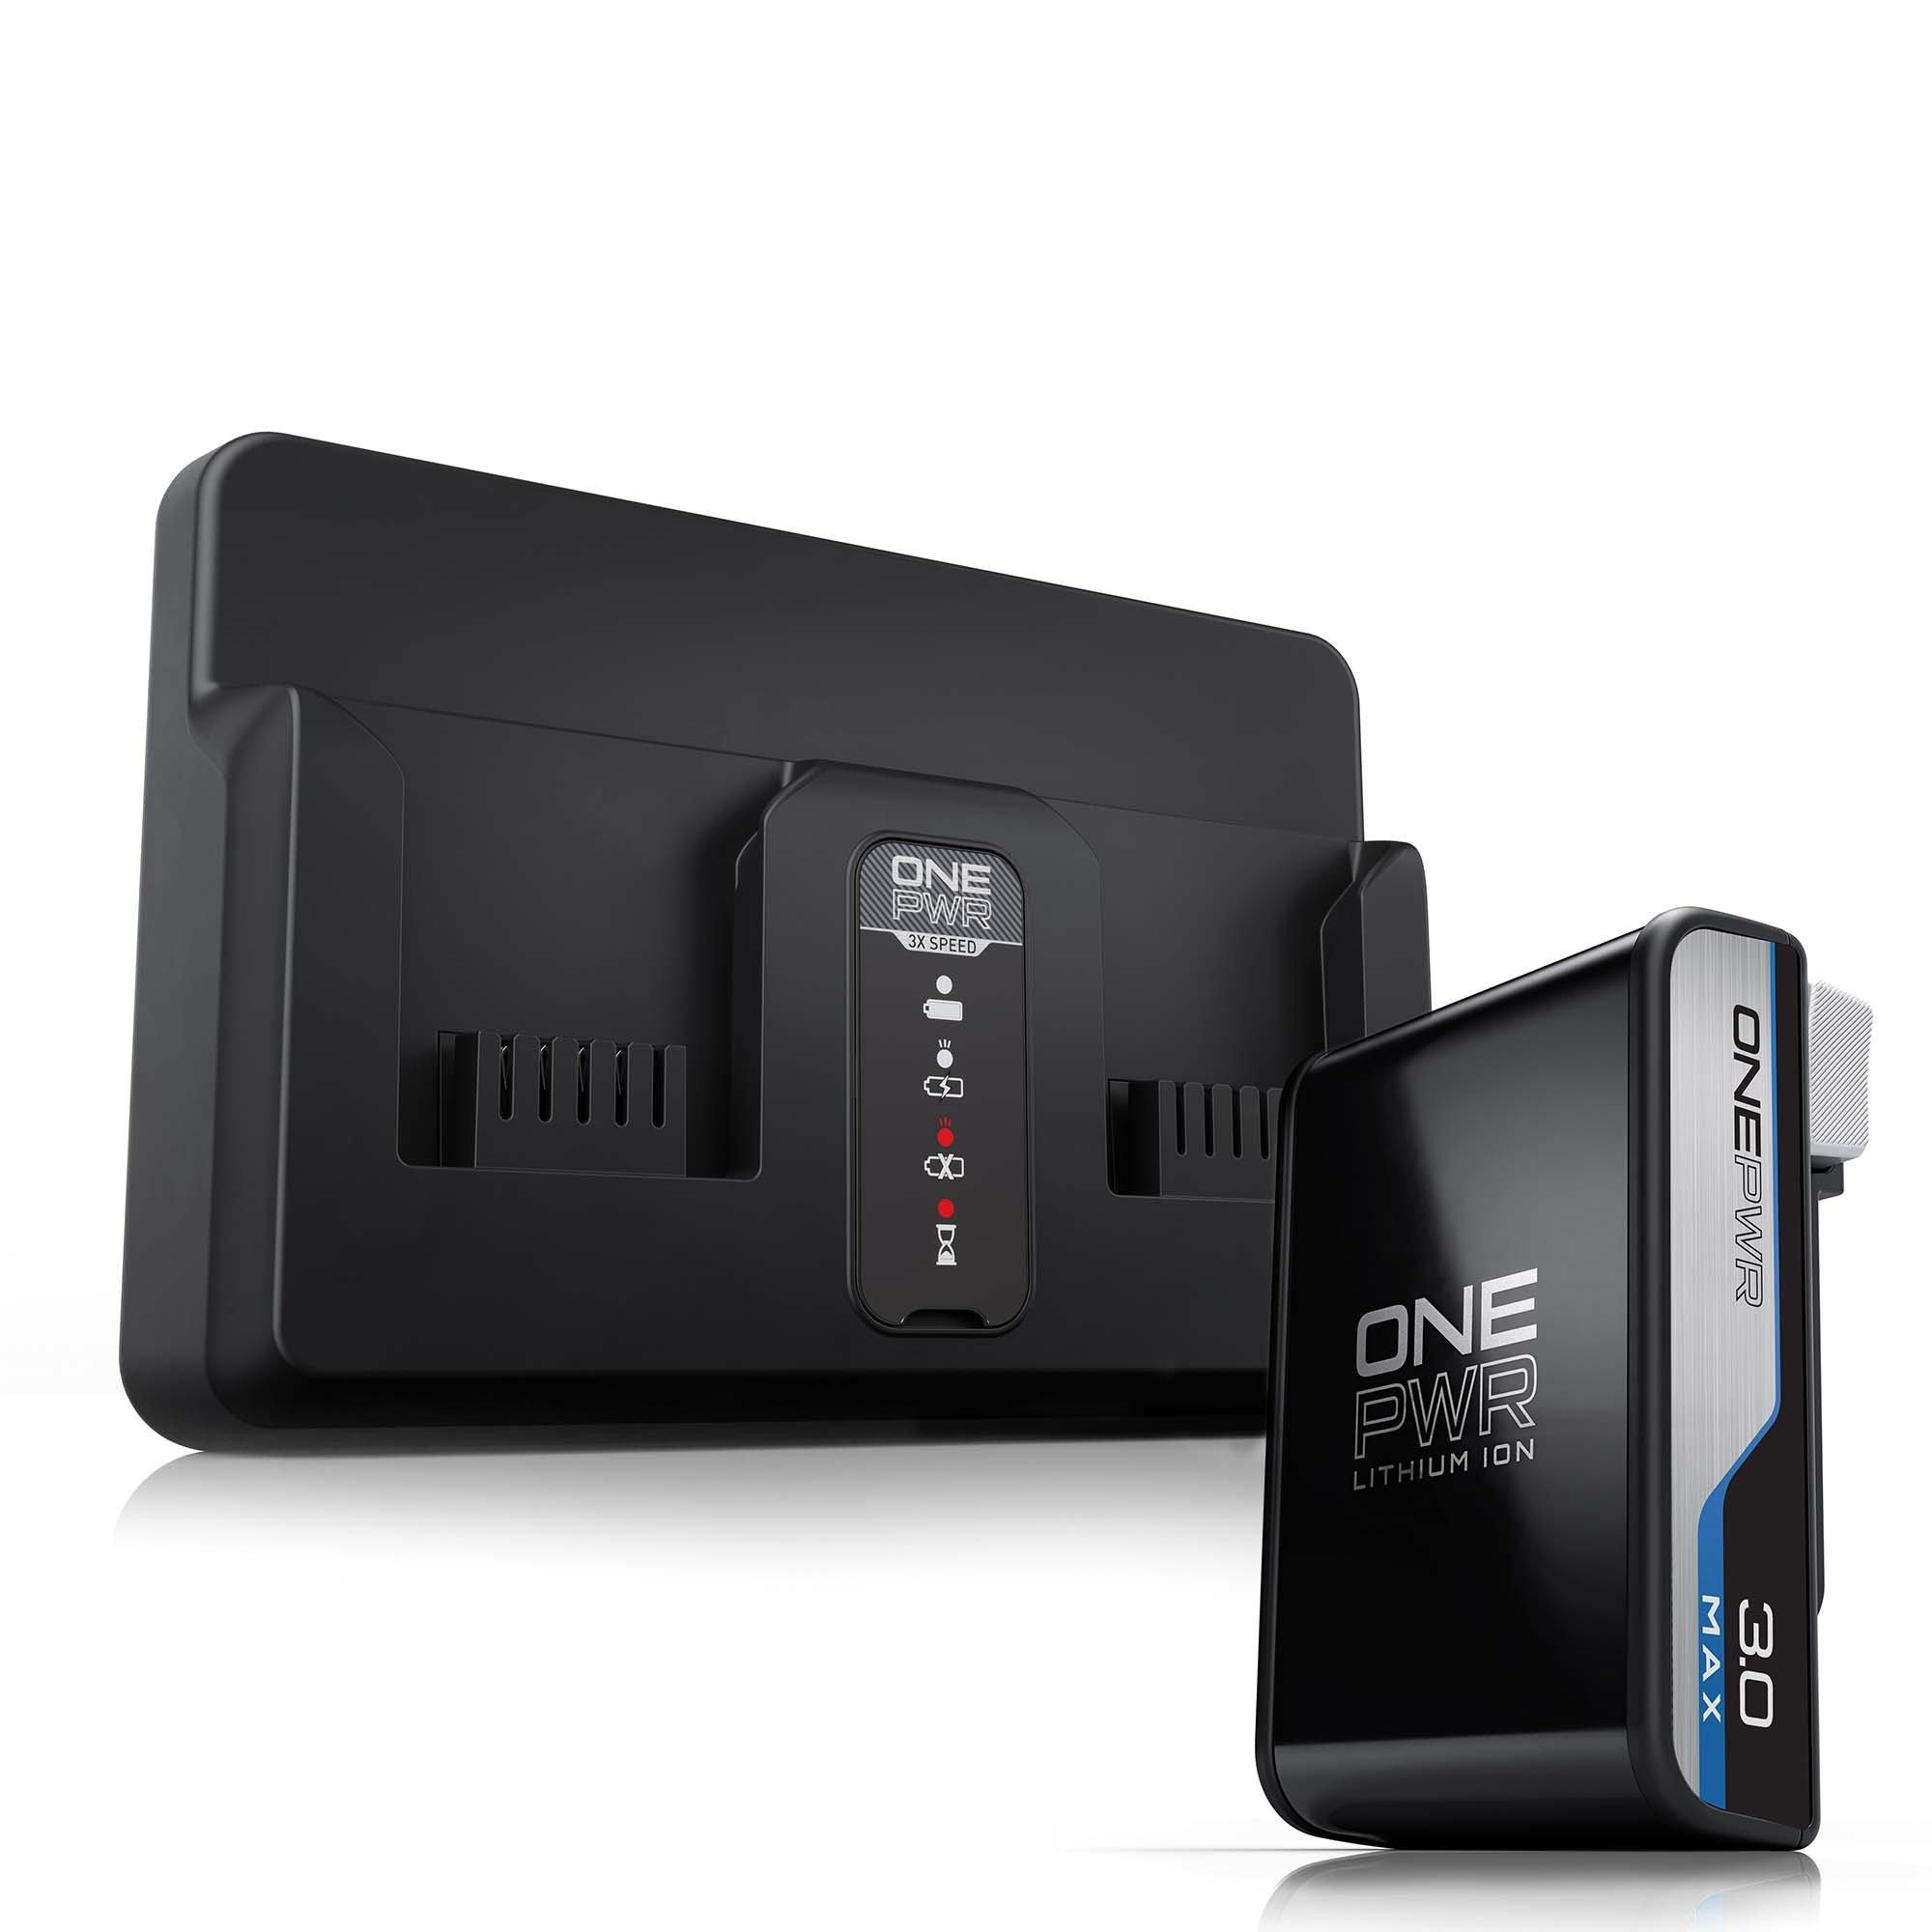 ONEPWR Dual Bay Charger with 3.0 Ah Battery